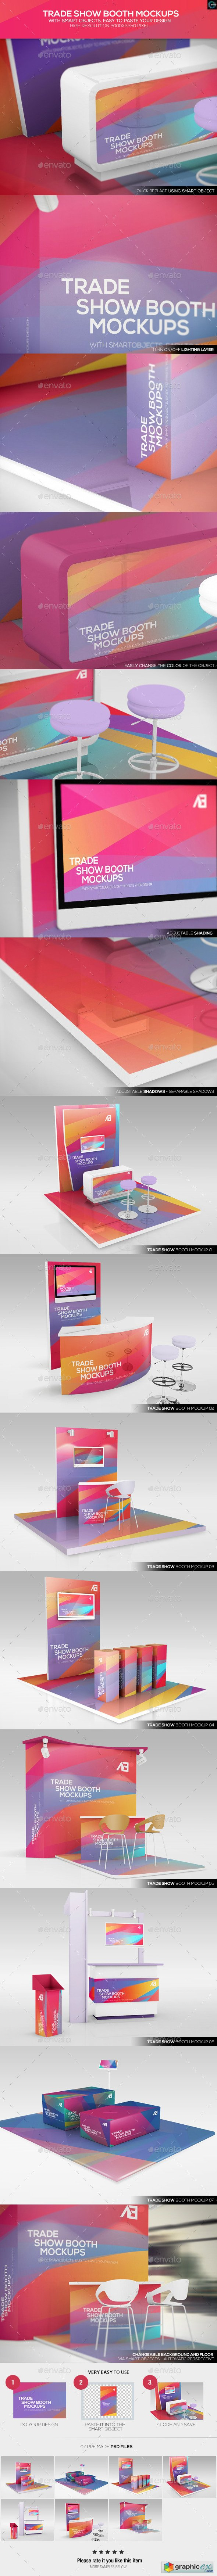 Trade Show Booth Mockups 11139823